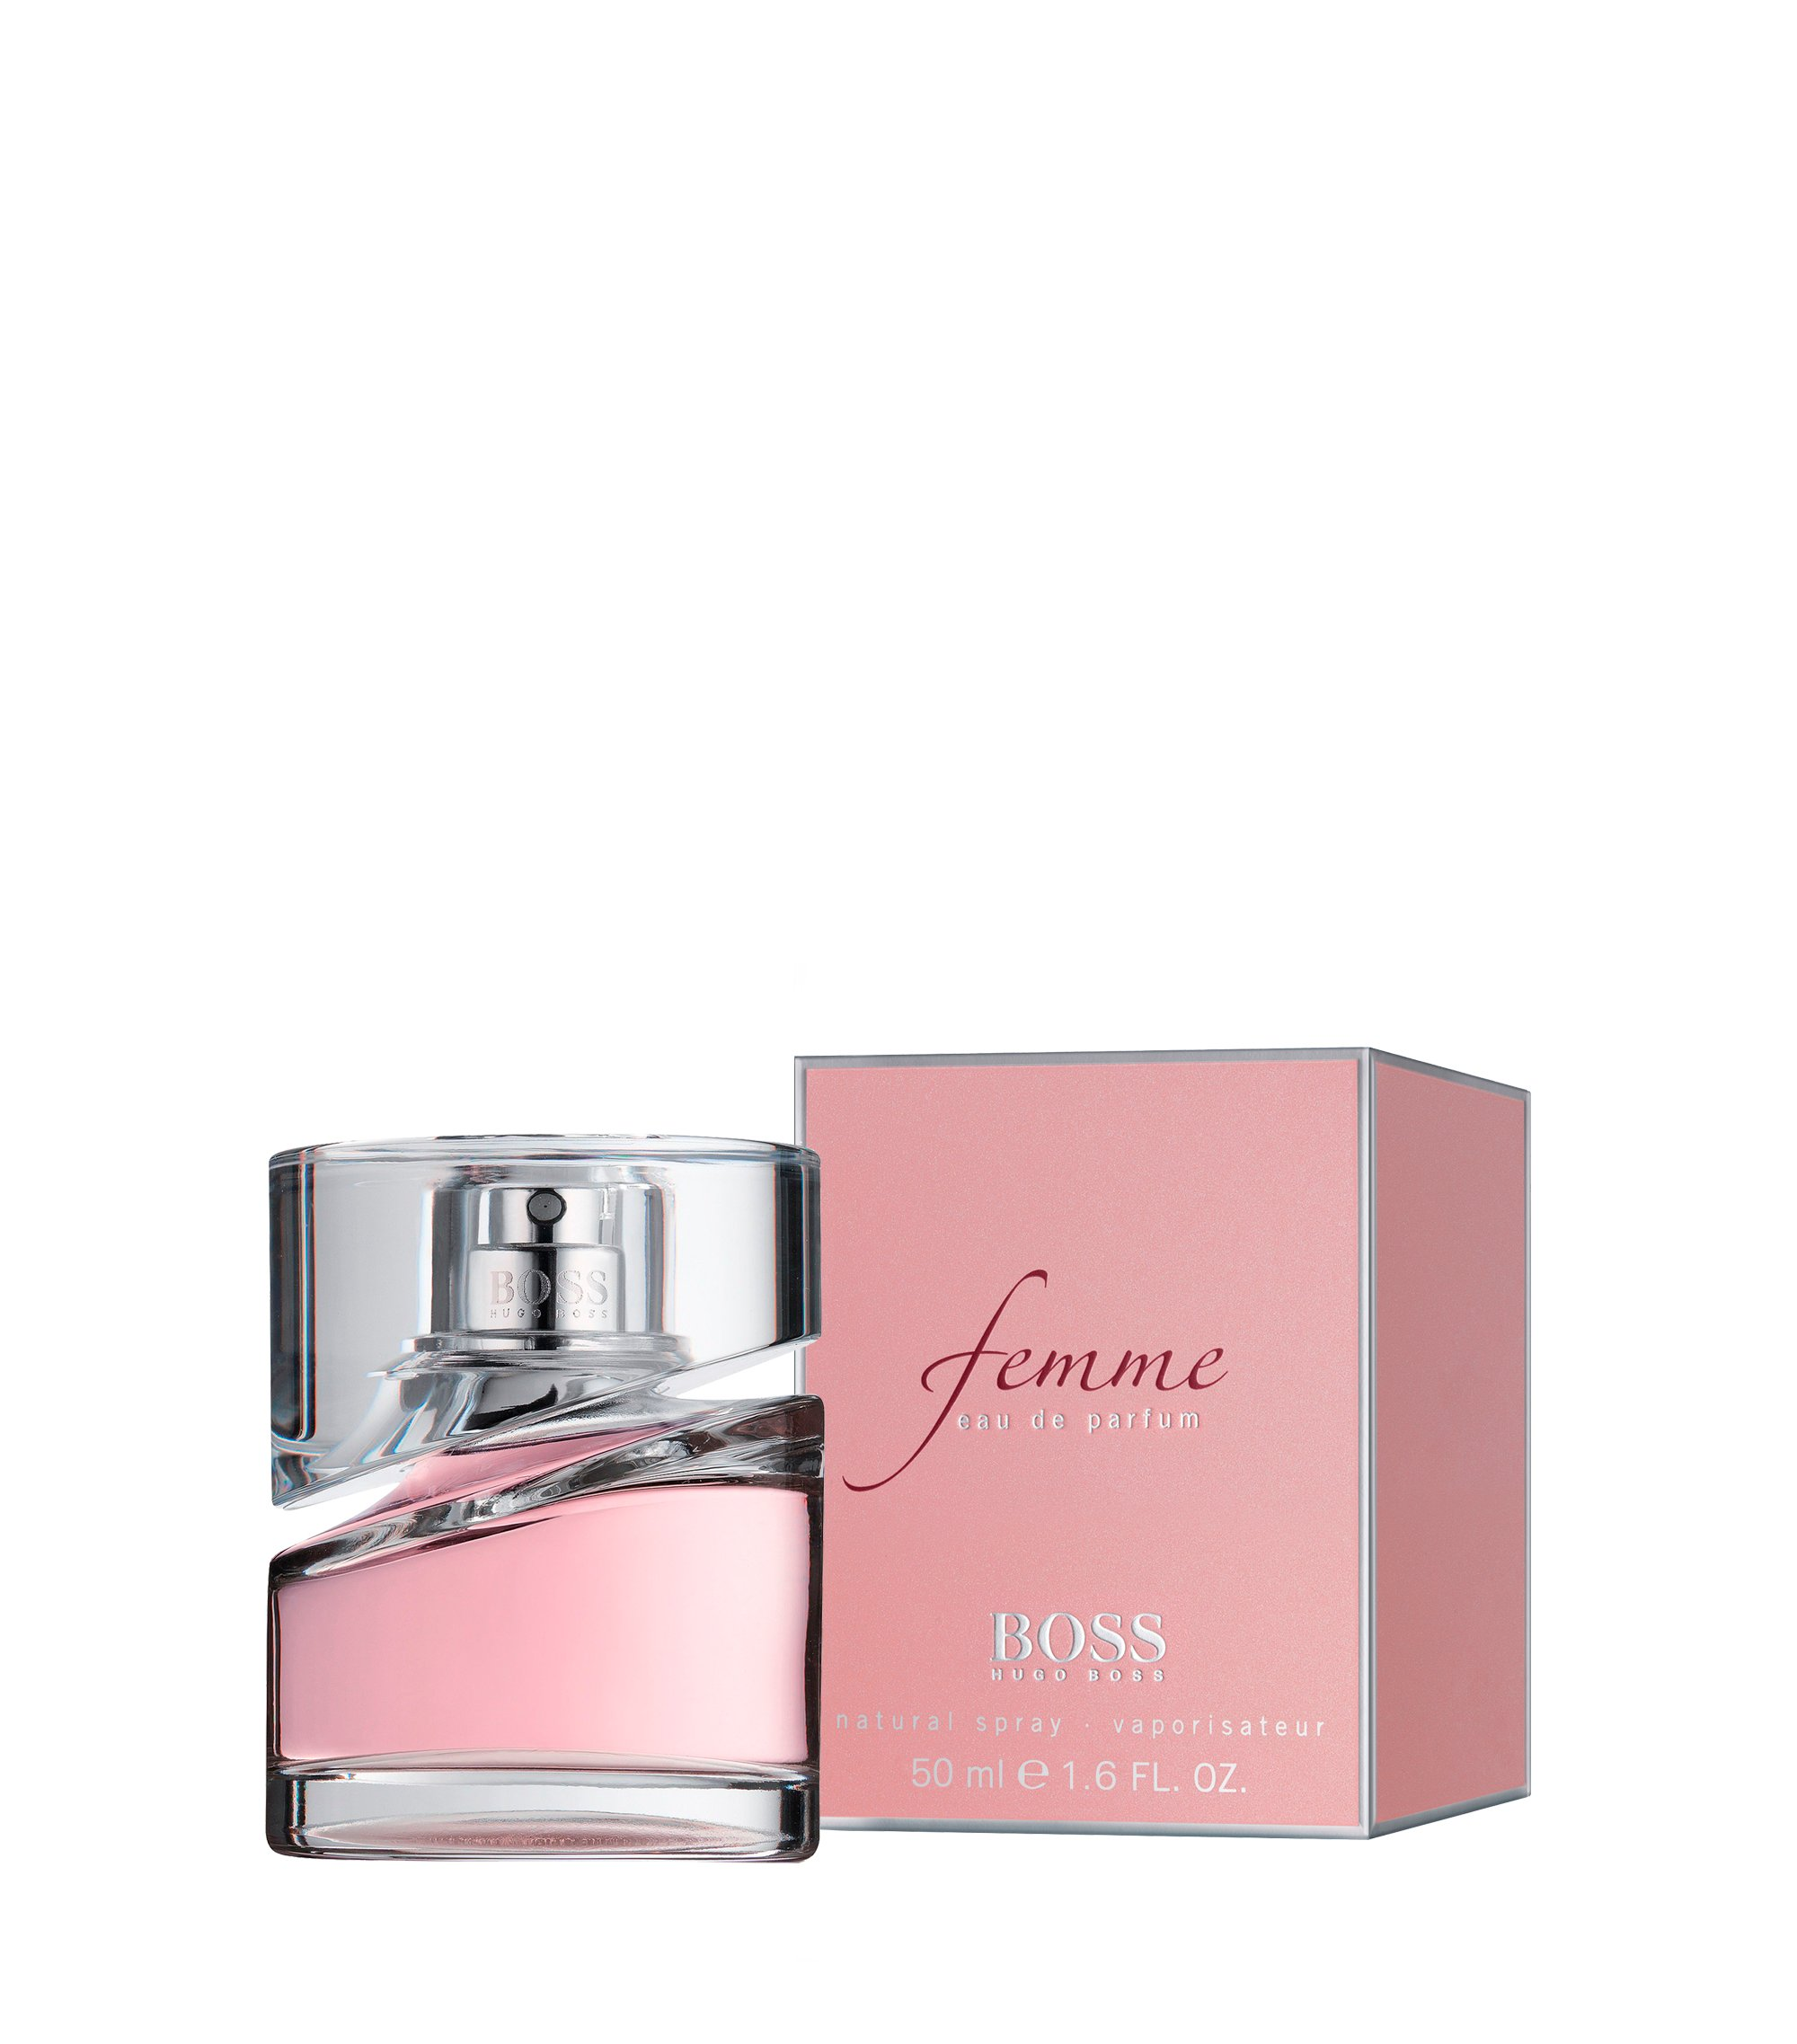 Femme by BOSS Eau de Parfum 50 ml , Assorted-Pre-Pack